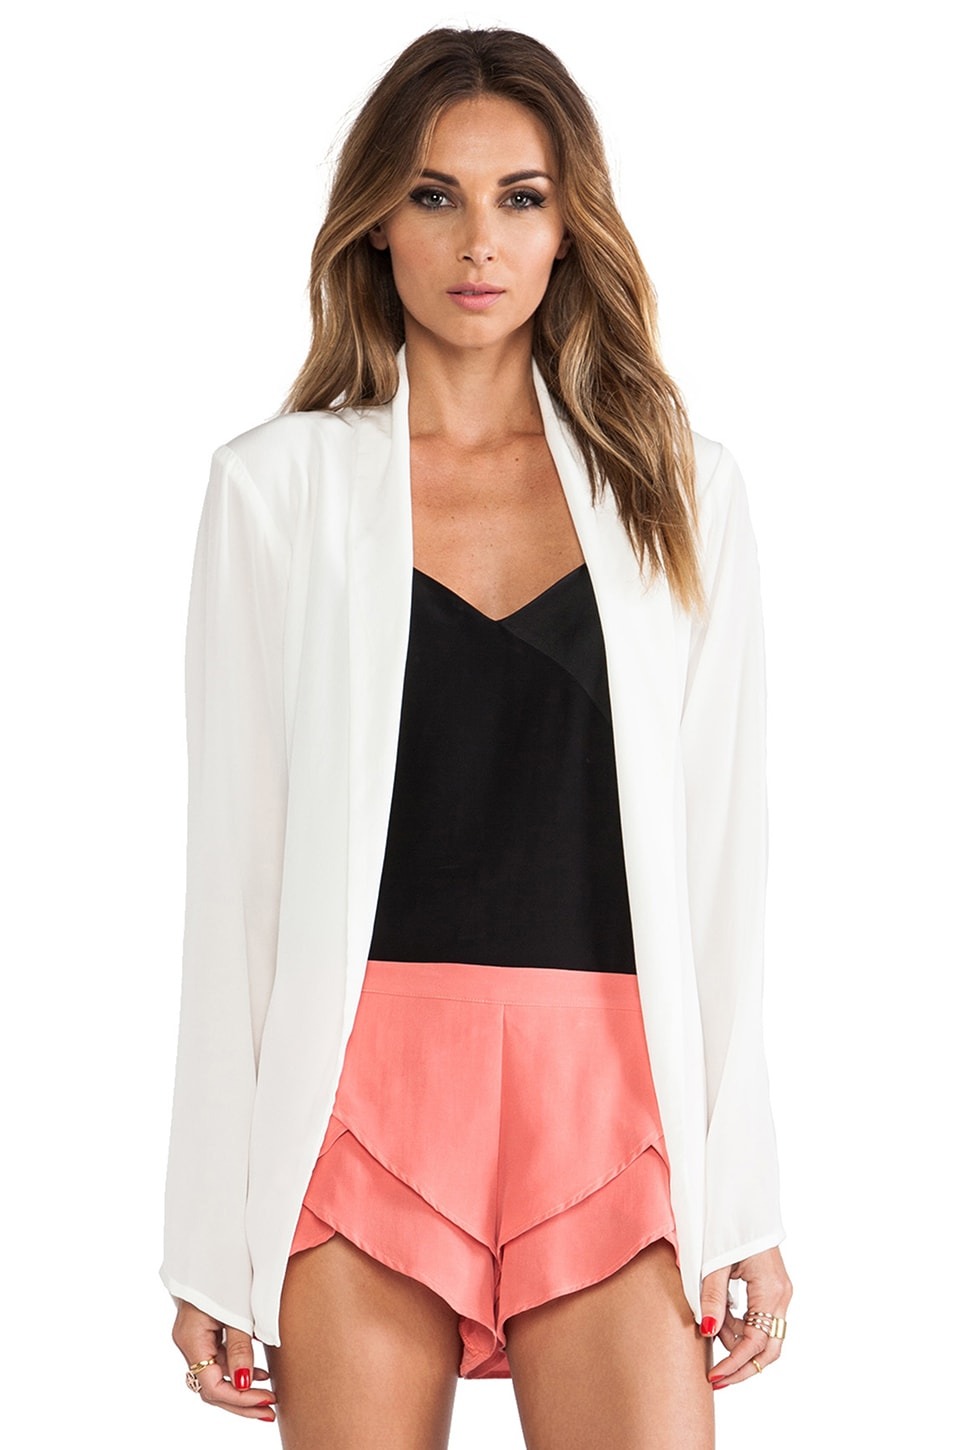 MERRITT CHARLES Ford Silk Blazer in White